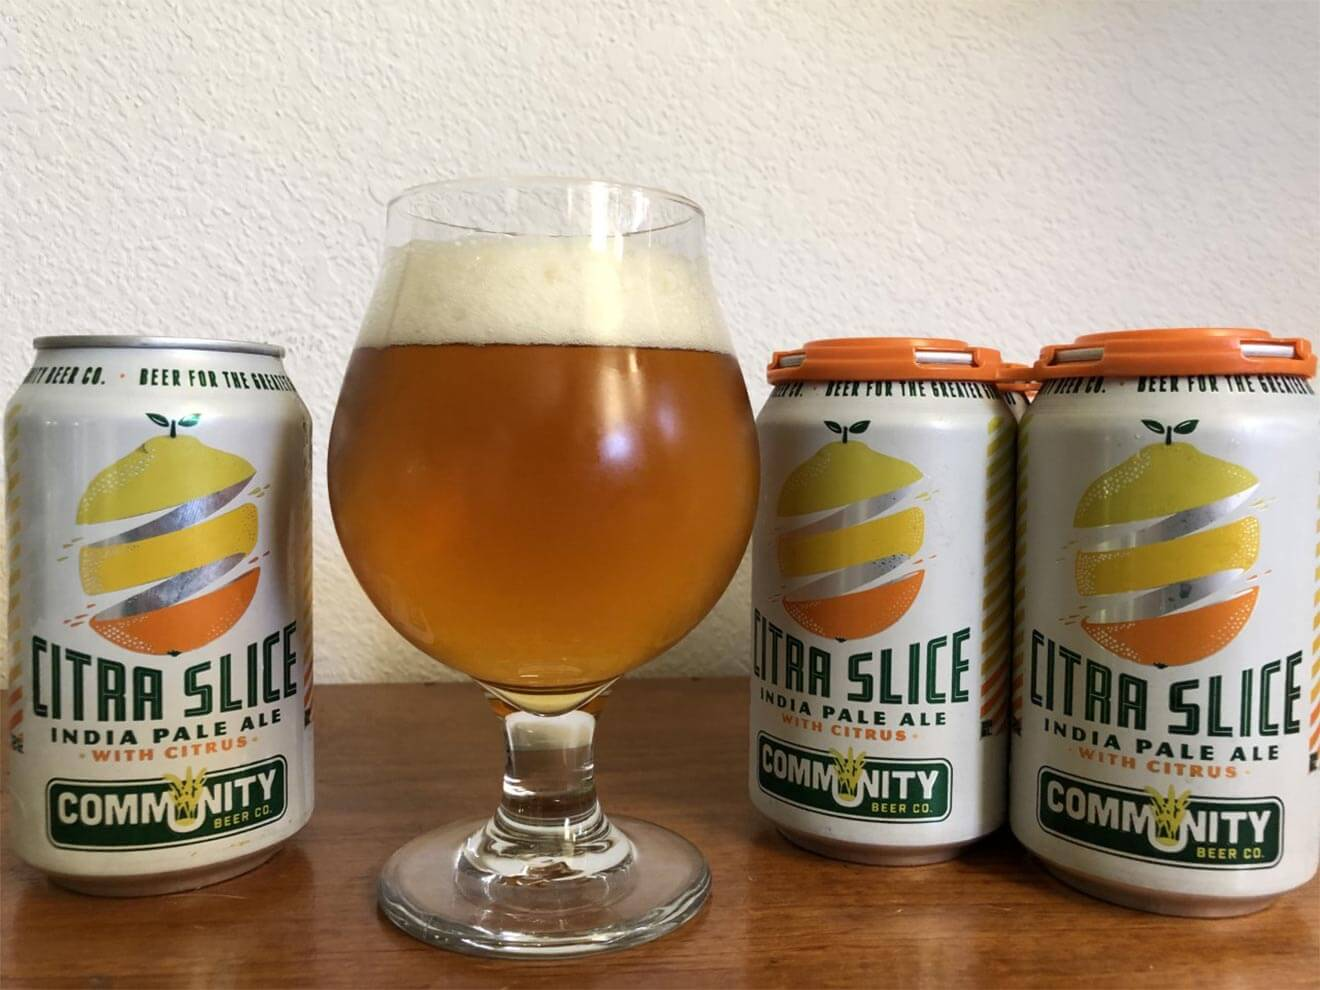 Community Beer Company Citra Slice IPA, glass and cans display